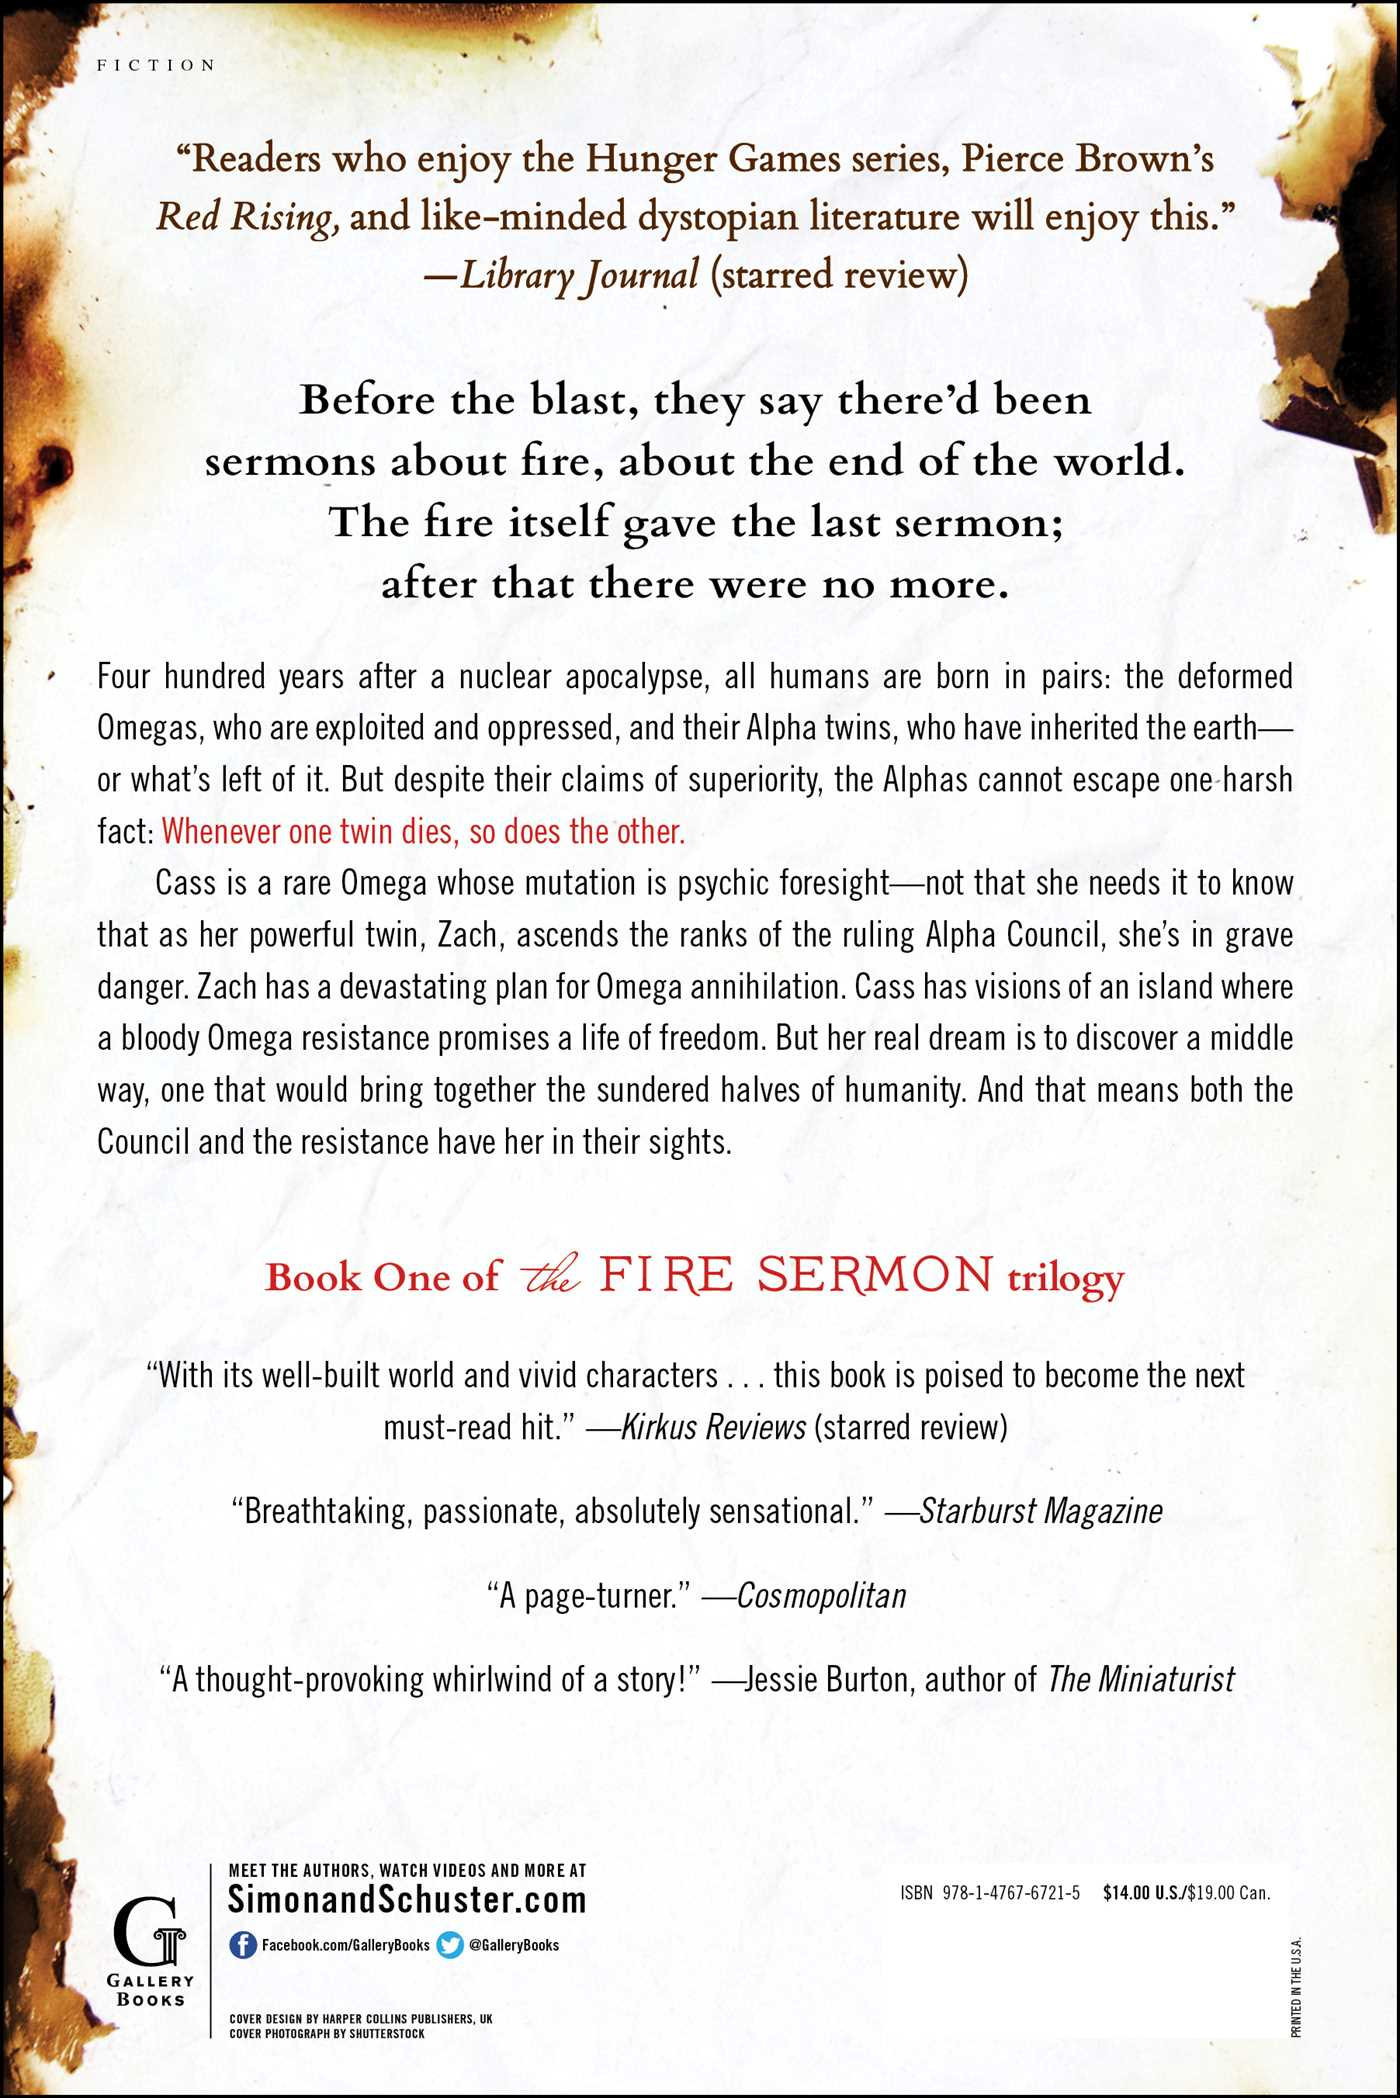 The fire sermon 9781476767215 hr back